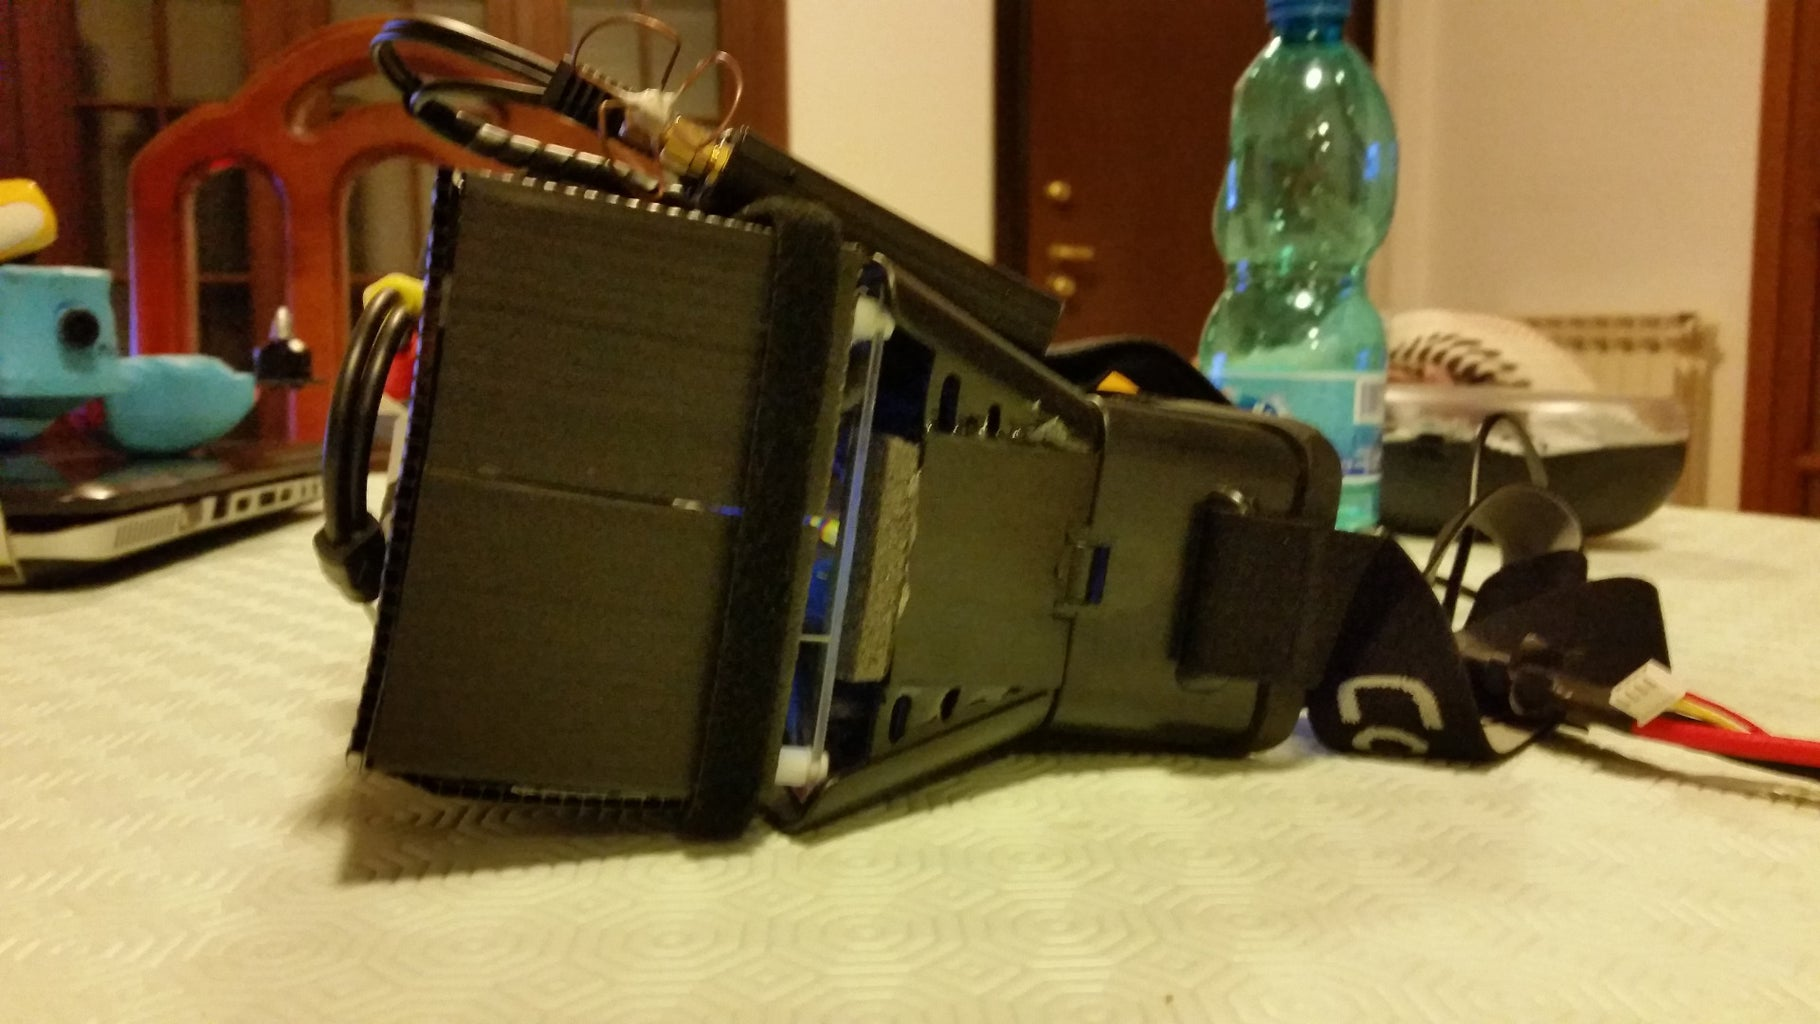 FPV Goggles With Local to Remote View Switch, With Local Infrared Camera